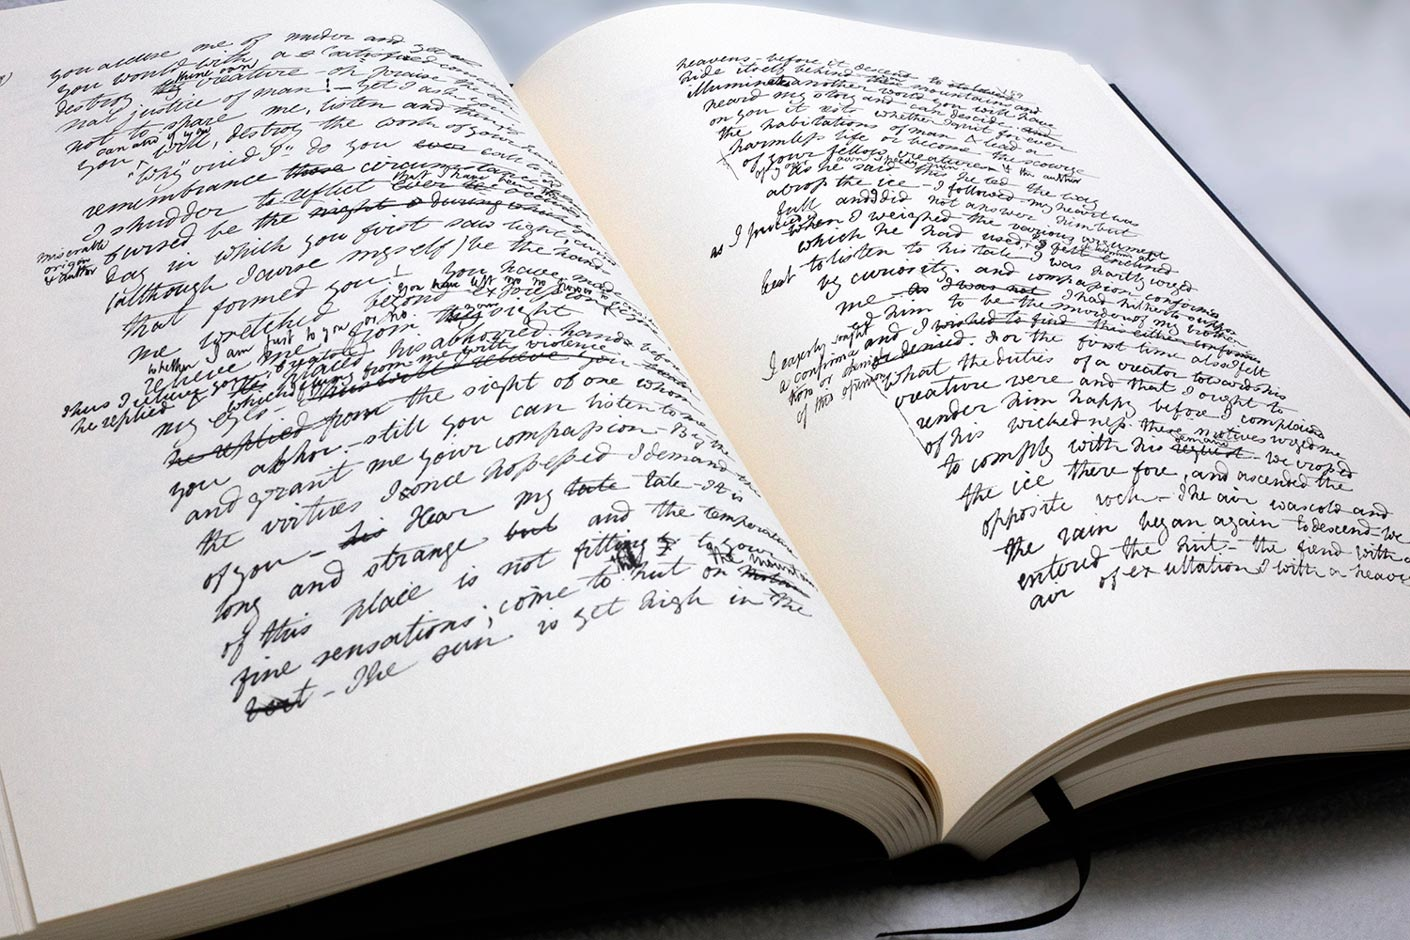 le manuscrit original de Frankenstein, ouvert